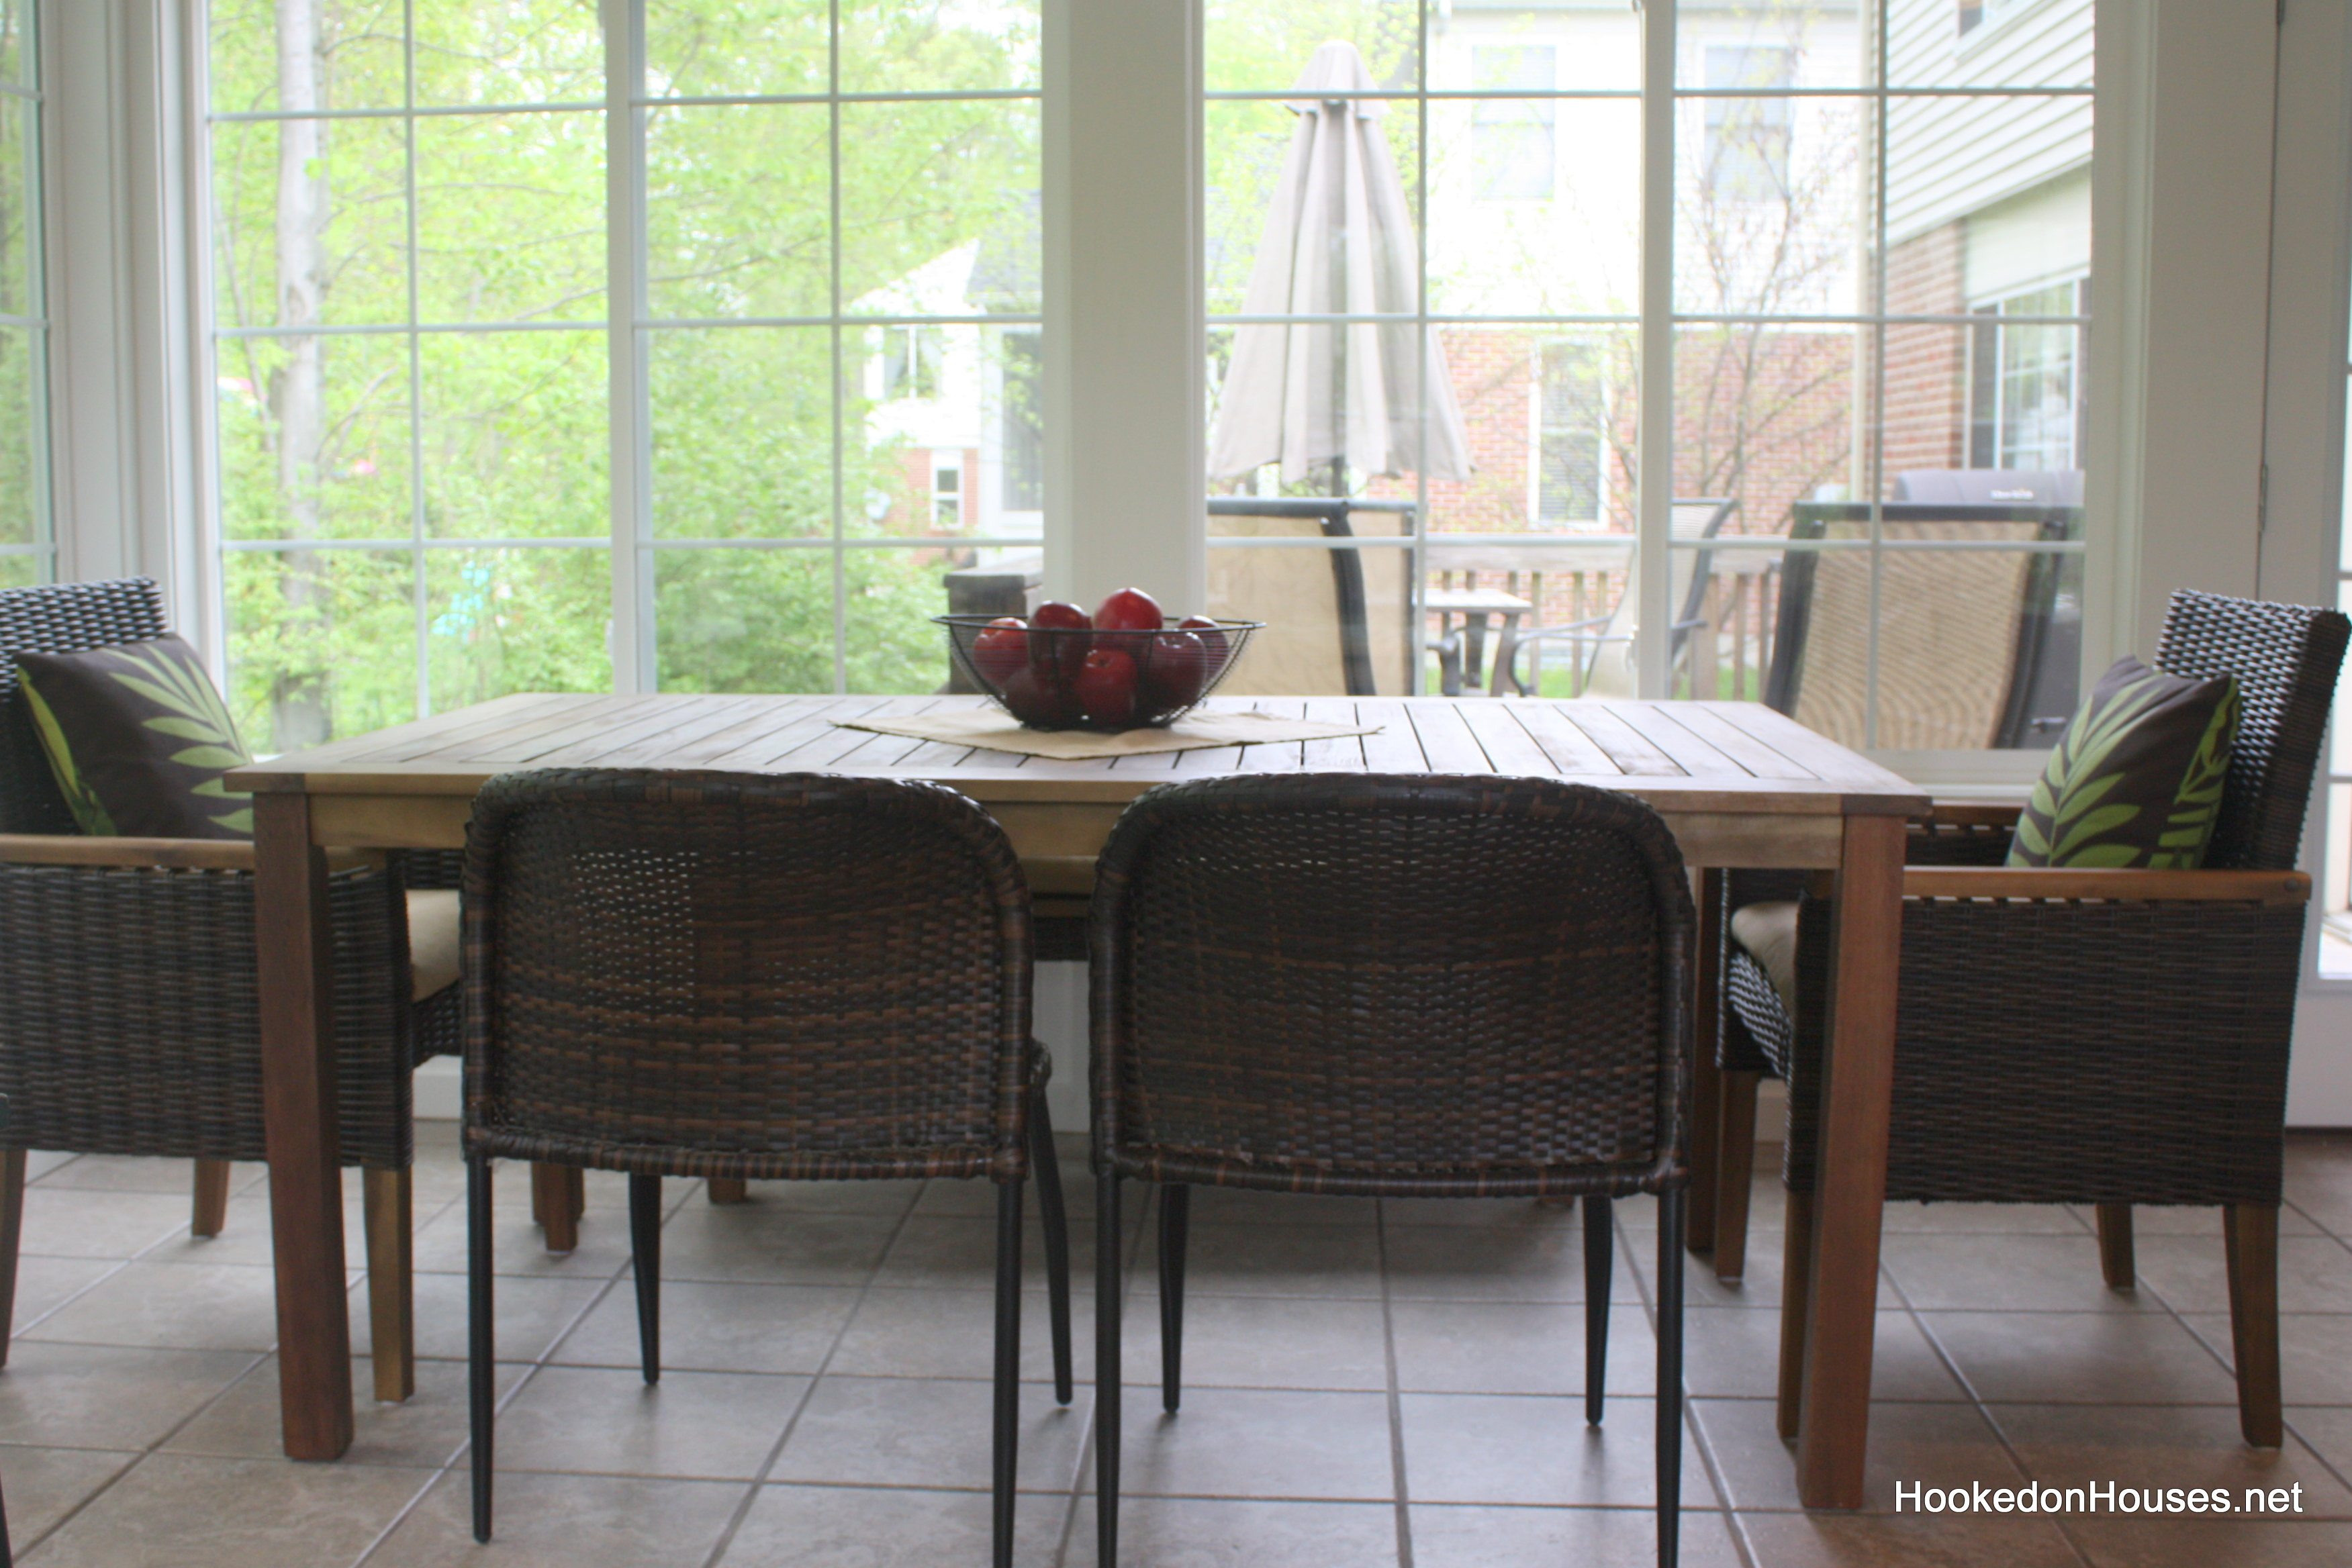 Sunroom Update: My New Table and Chairs - Hooked on Houses